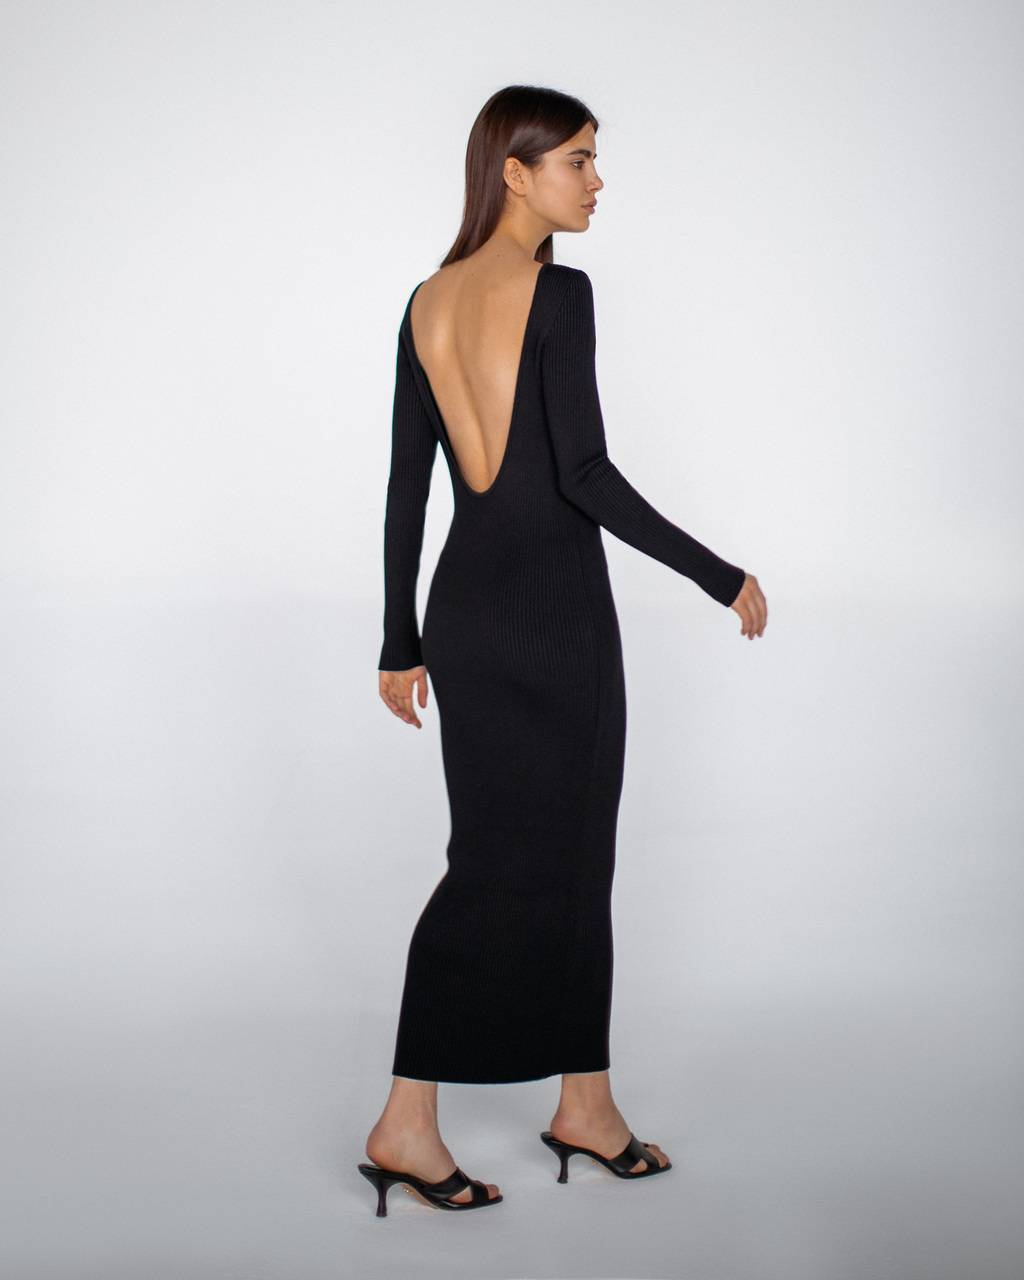 Knit dress with open back - 292 USD / 249 EUR